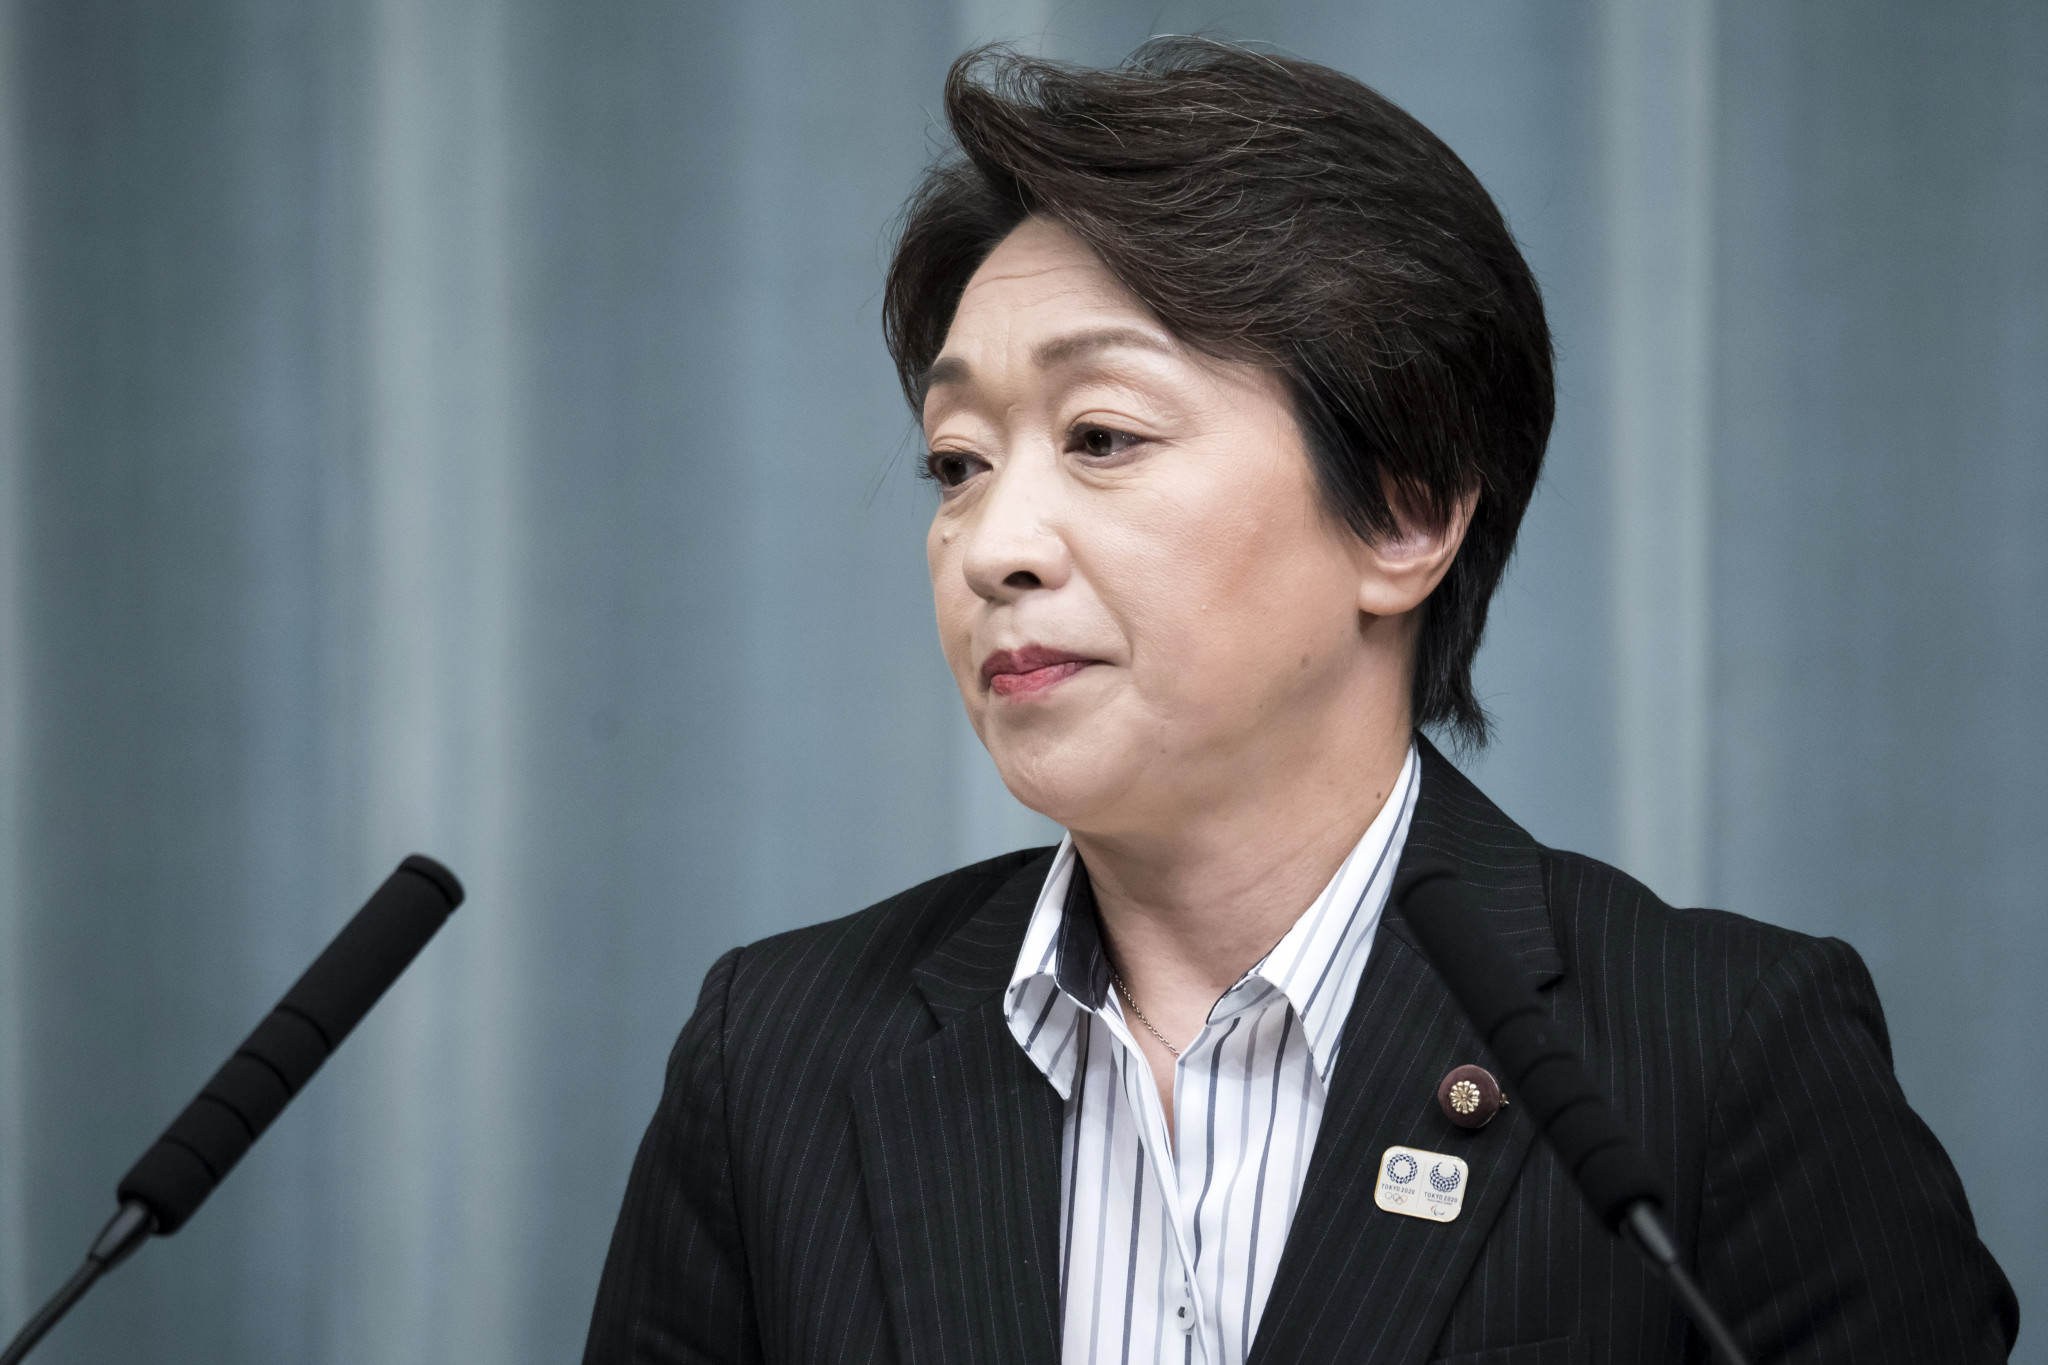 Japan's Olympics Minister Seiko Hashimoto is adamant the Tokyo 2020 Games will go ahead in some form ©Getty Images